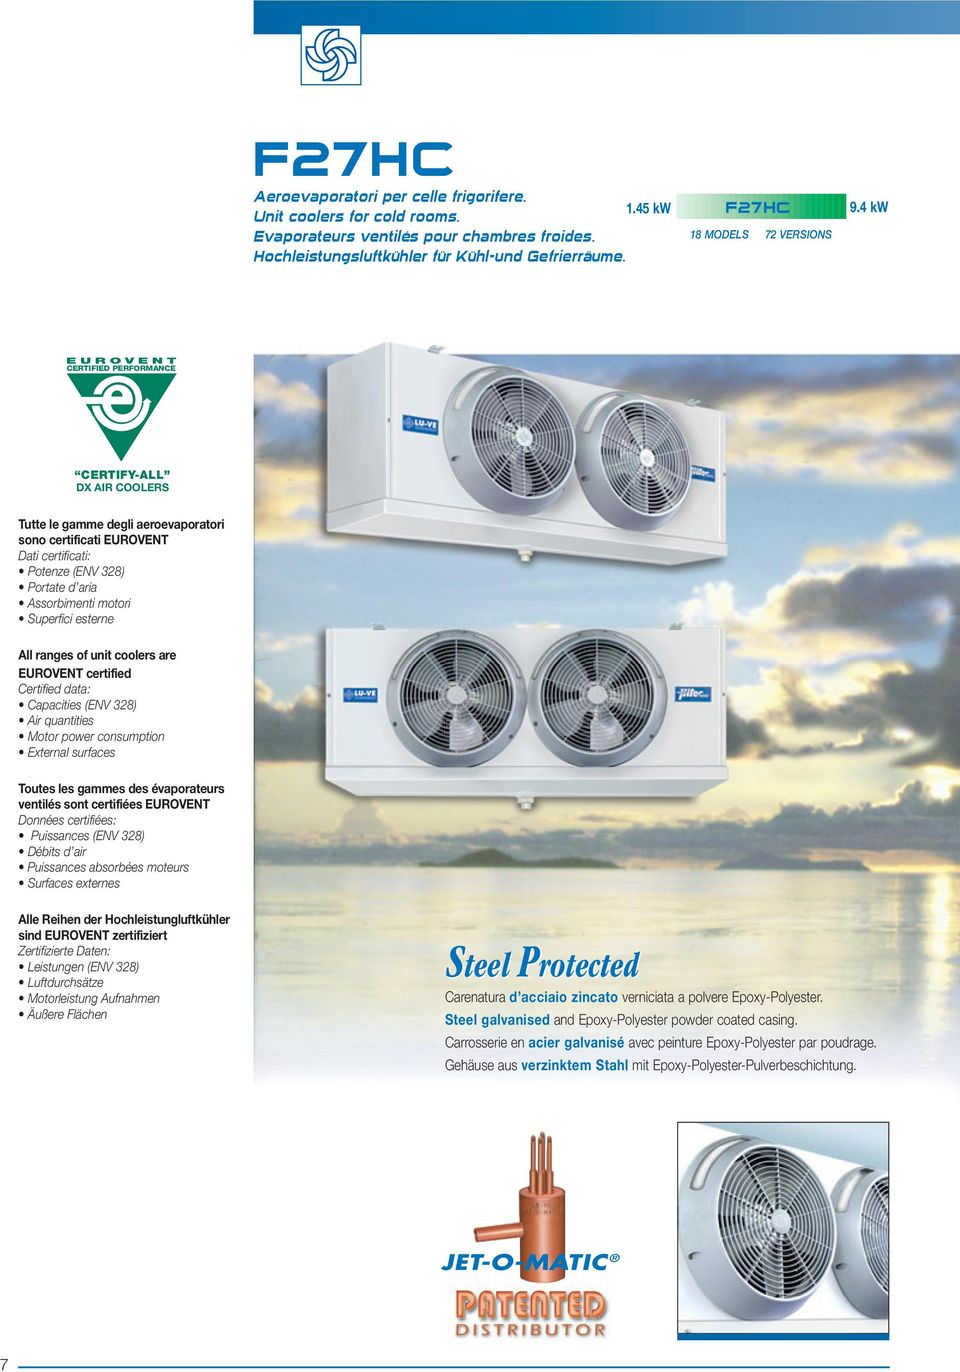 Assorbimenti motori Superfici esterne All ranges of unit coolers are EUROVENT certified Certified data: Capacities (ENV 328) Air quantities Motor power consumption External surfaces Toutes les gammes